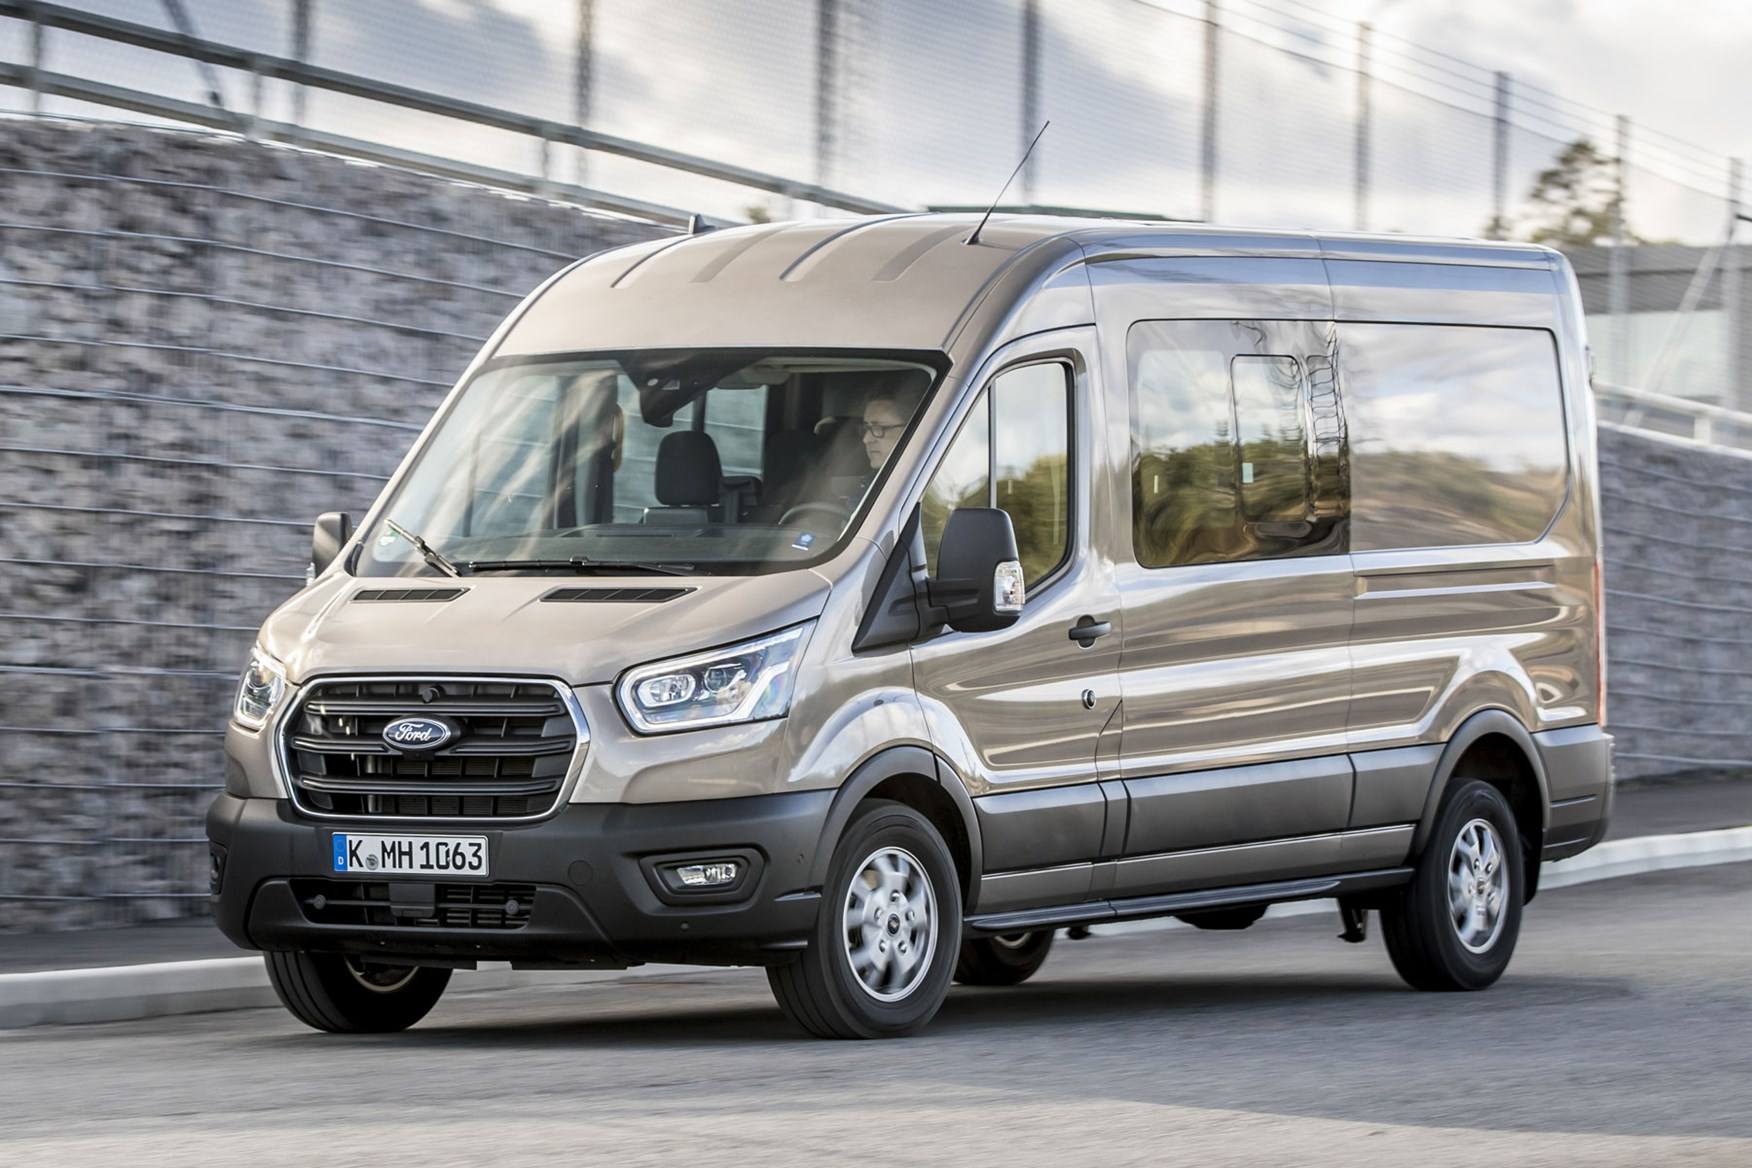 Ford Transit review - 2019 facelift model, DCiV, front view